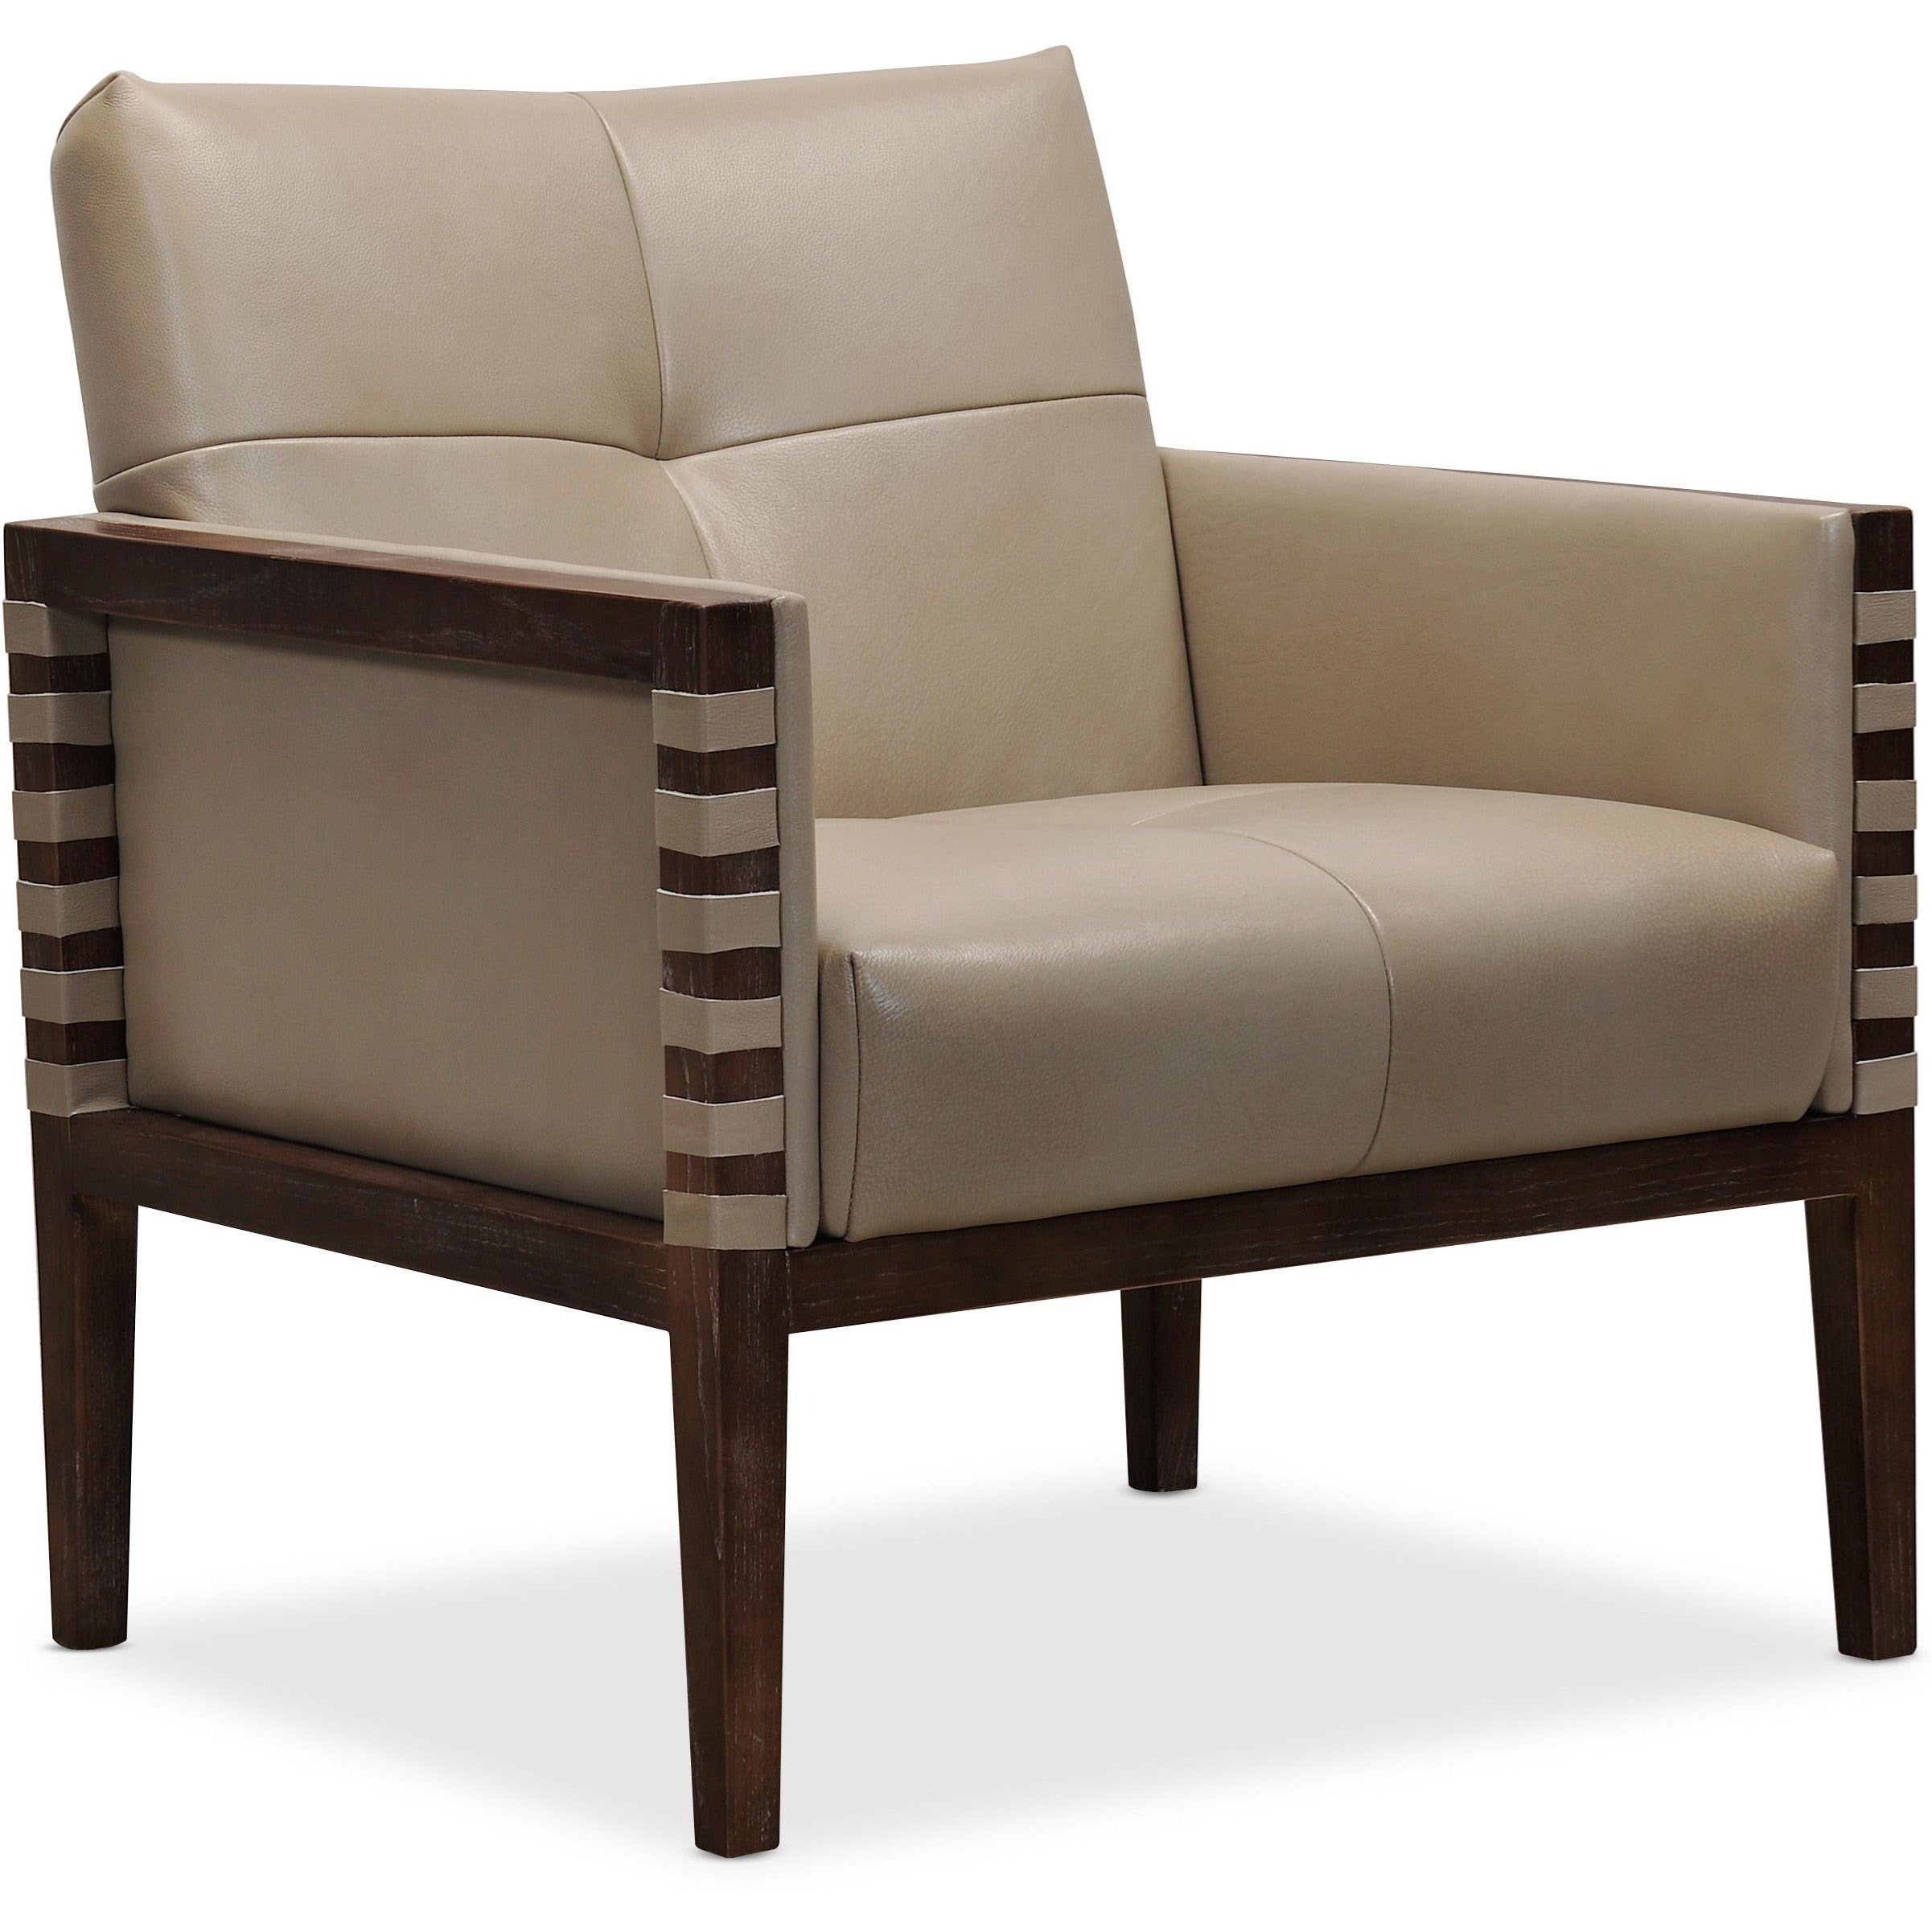 Carverdale Leather Club Chair w/ Wood Frame by Hooker Furniture at Miller Waldrop Furniture and Decor